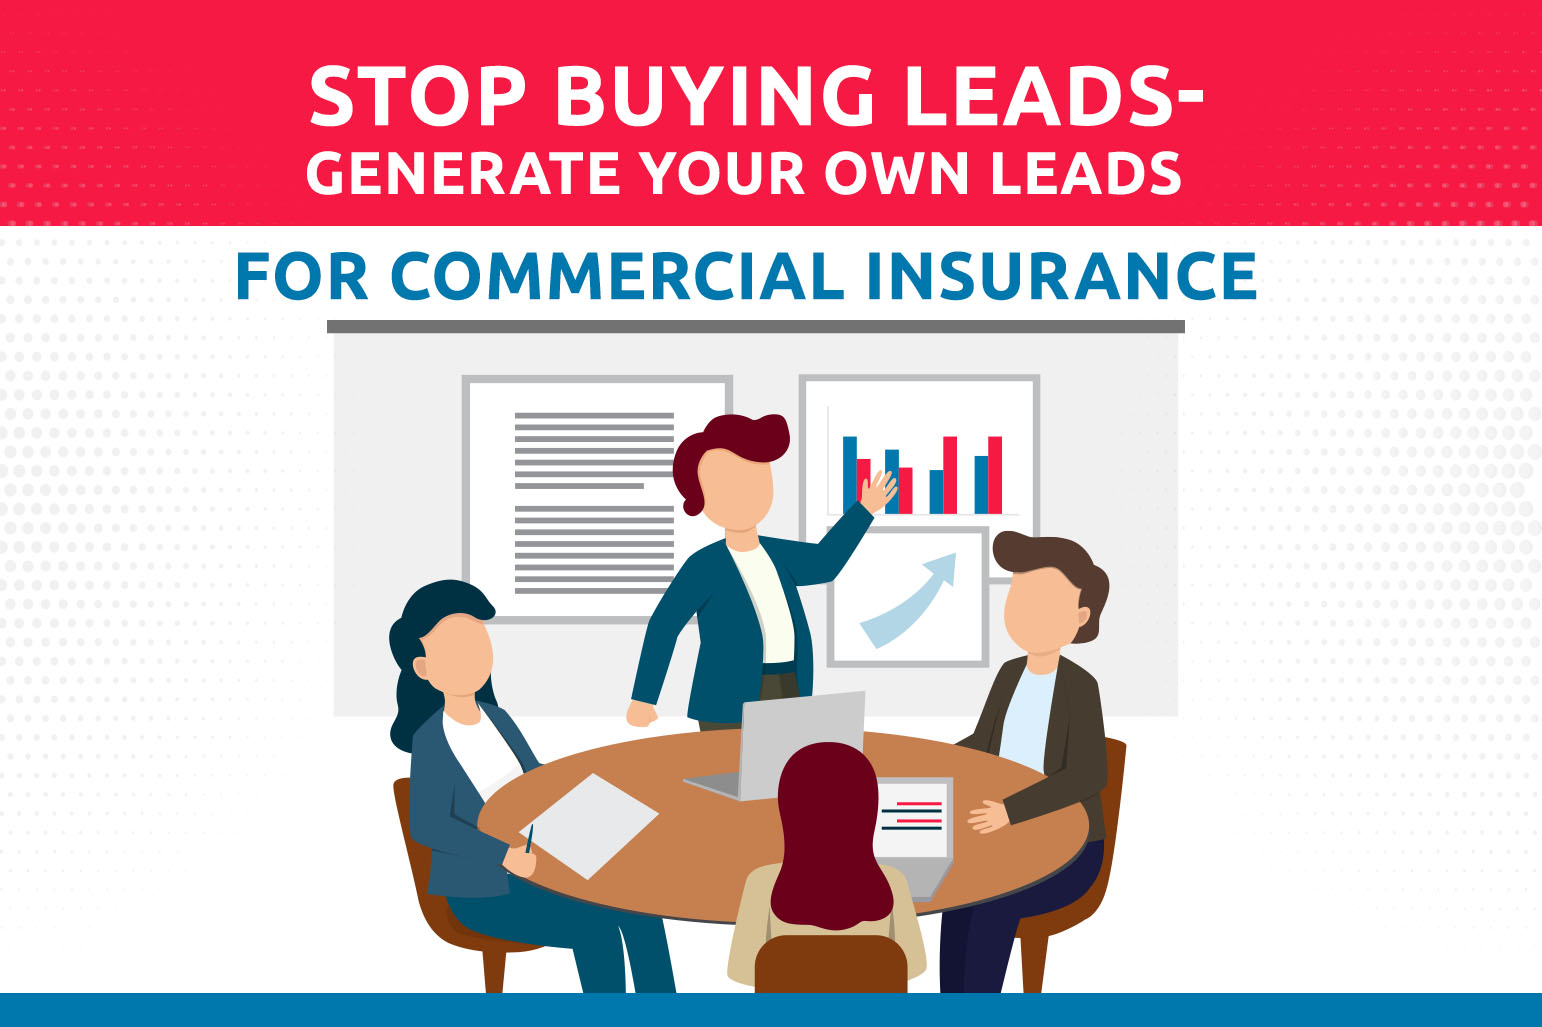 Stop Buying Leads: Generate Your Own Leads For Commercial Insurance